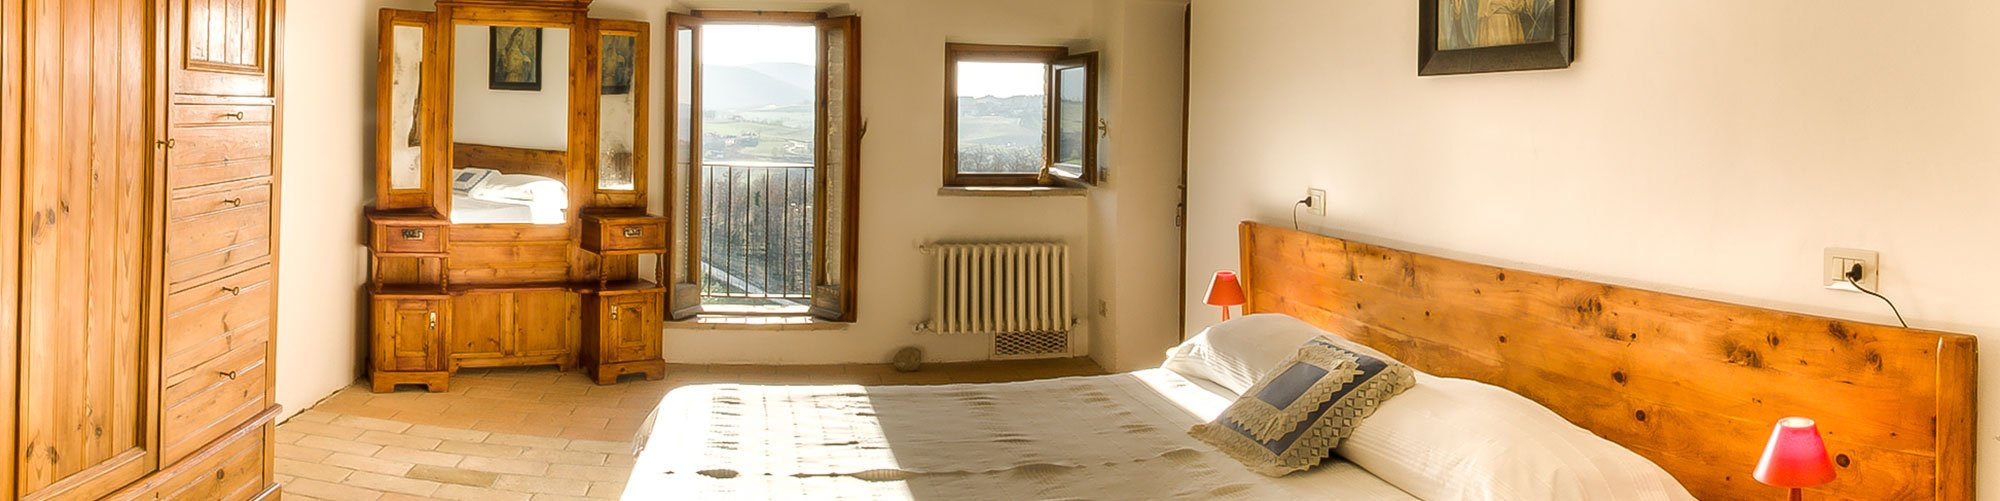 Villa Pianeante in Umbria - Bedroom